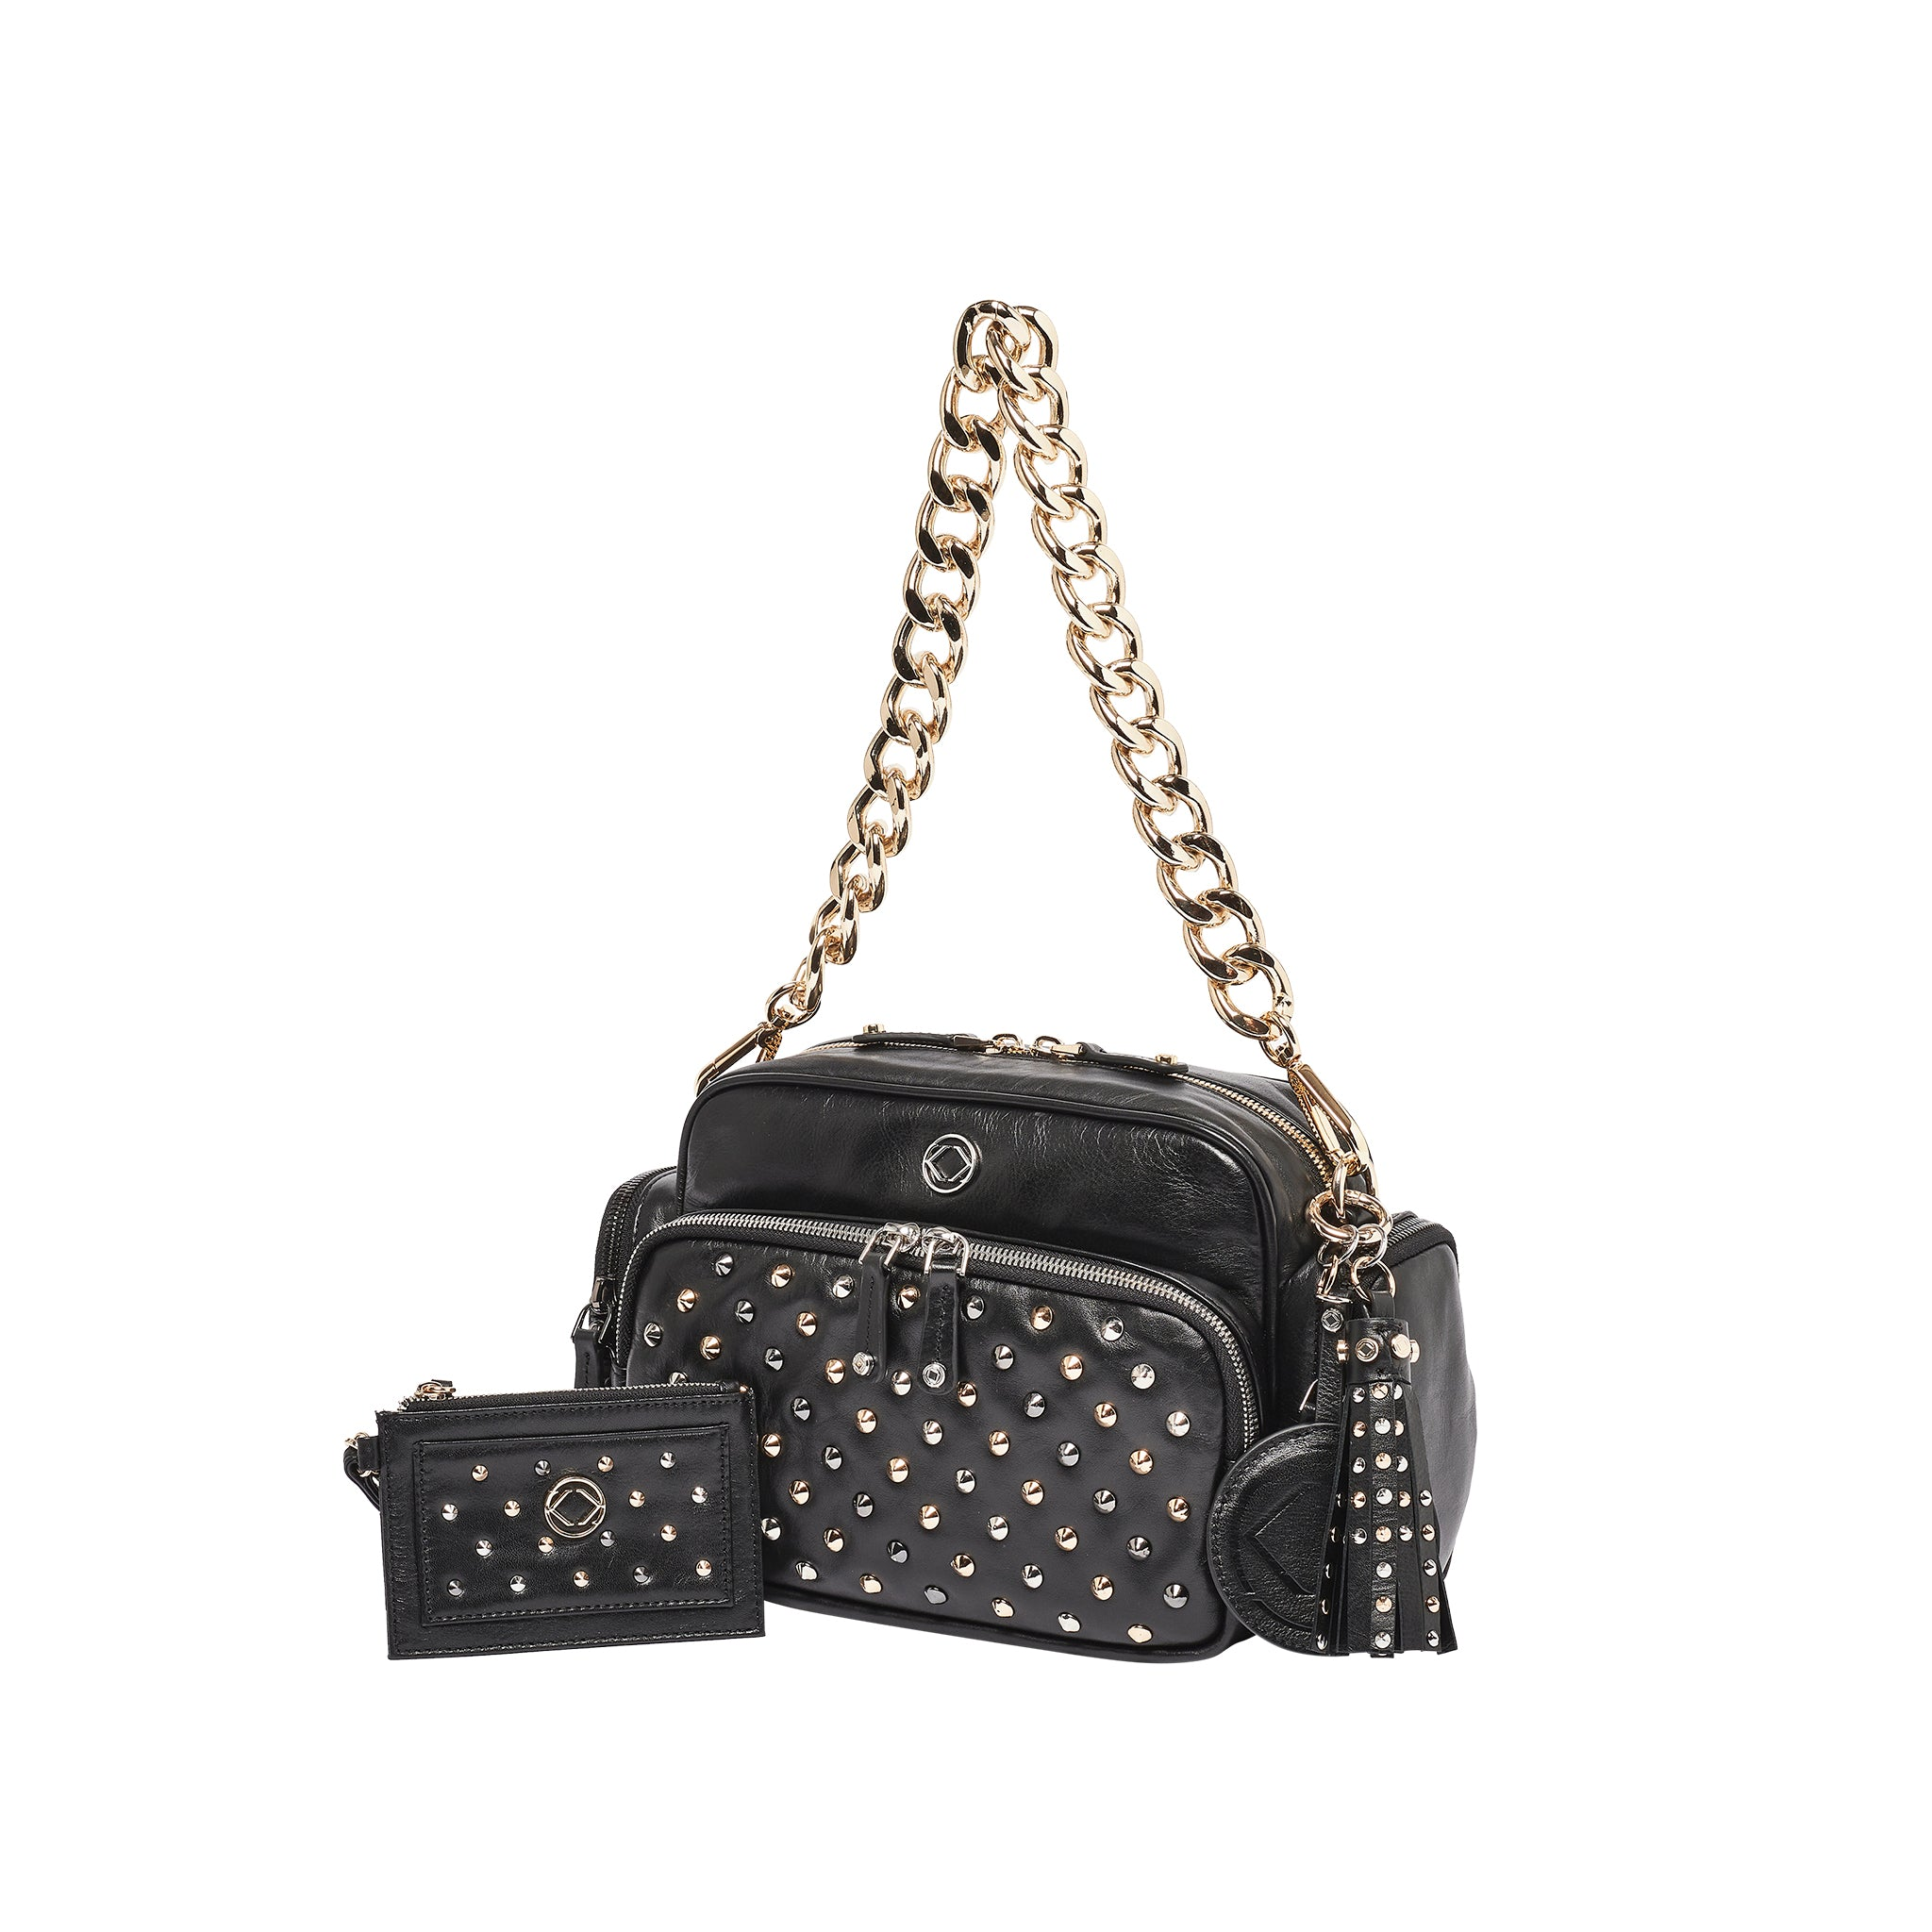 Luxury designer Greta Black Studded leather organiser baby changing bag with chain strap